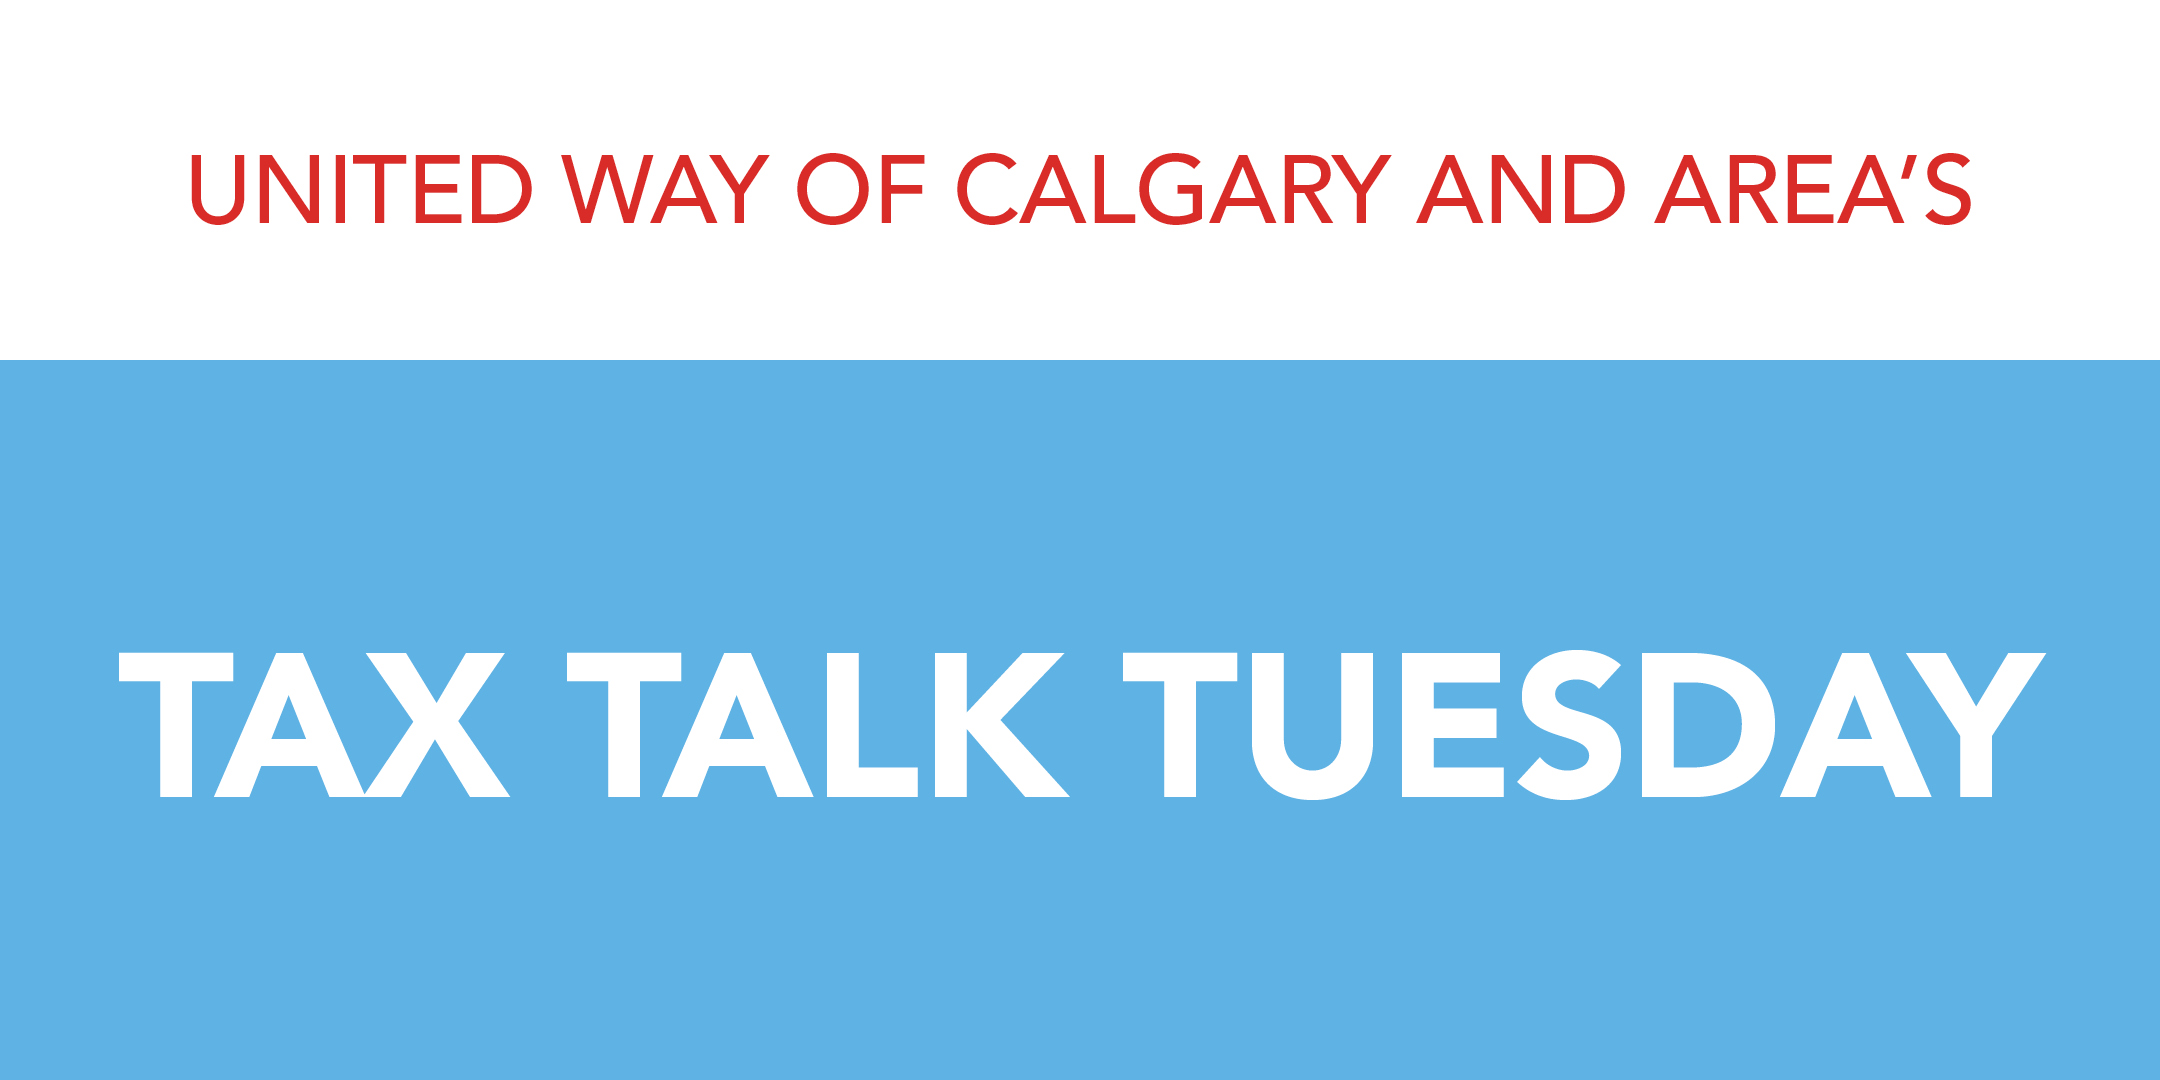 United Way of Calgary and Area's Tax Talk Tuesday